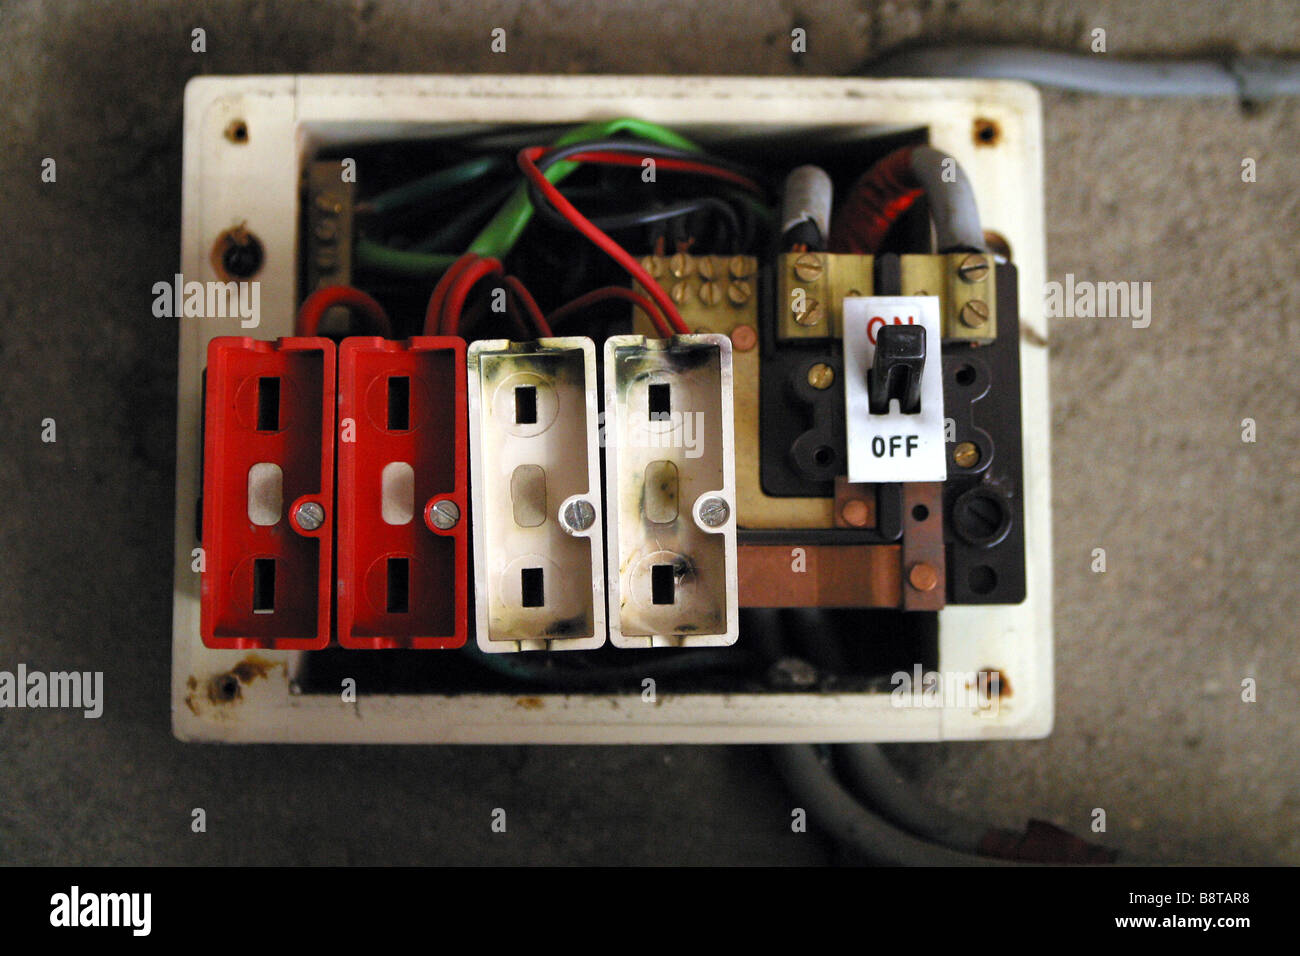 Bus Fuse Box Wiring Library Cat 6 Patch Cable Diagram Old Home Schematics Boxes For Homes